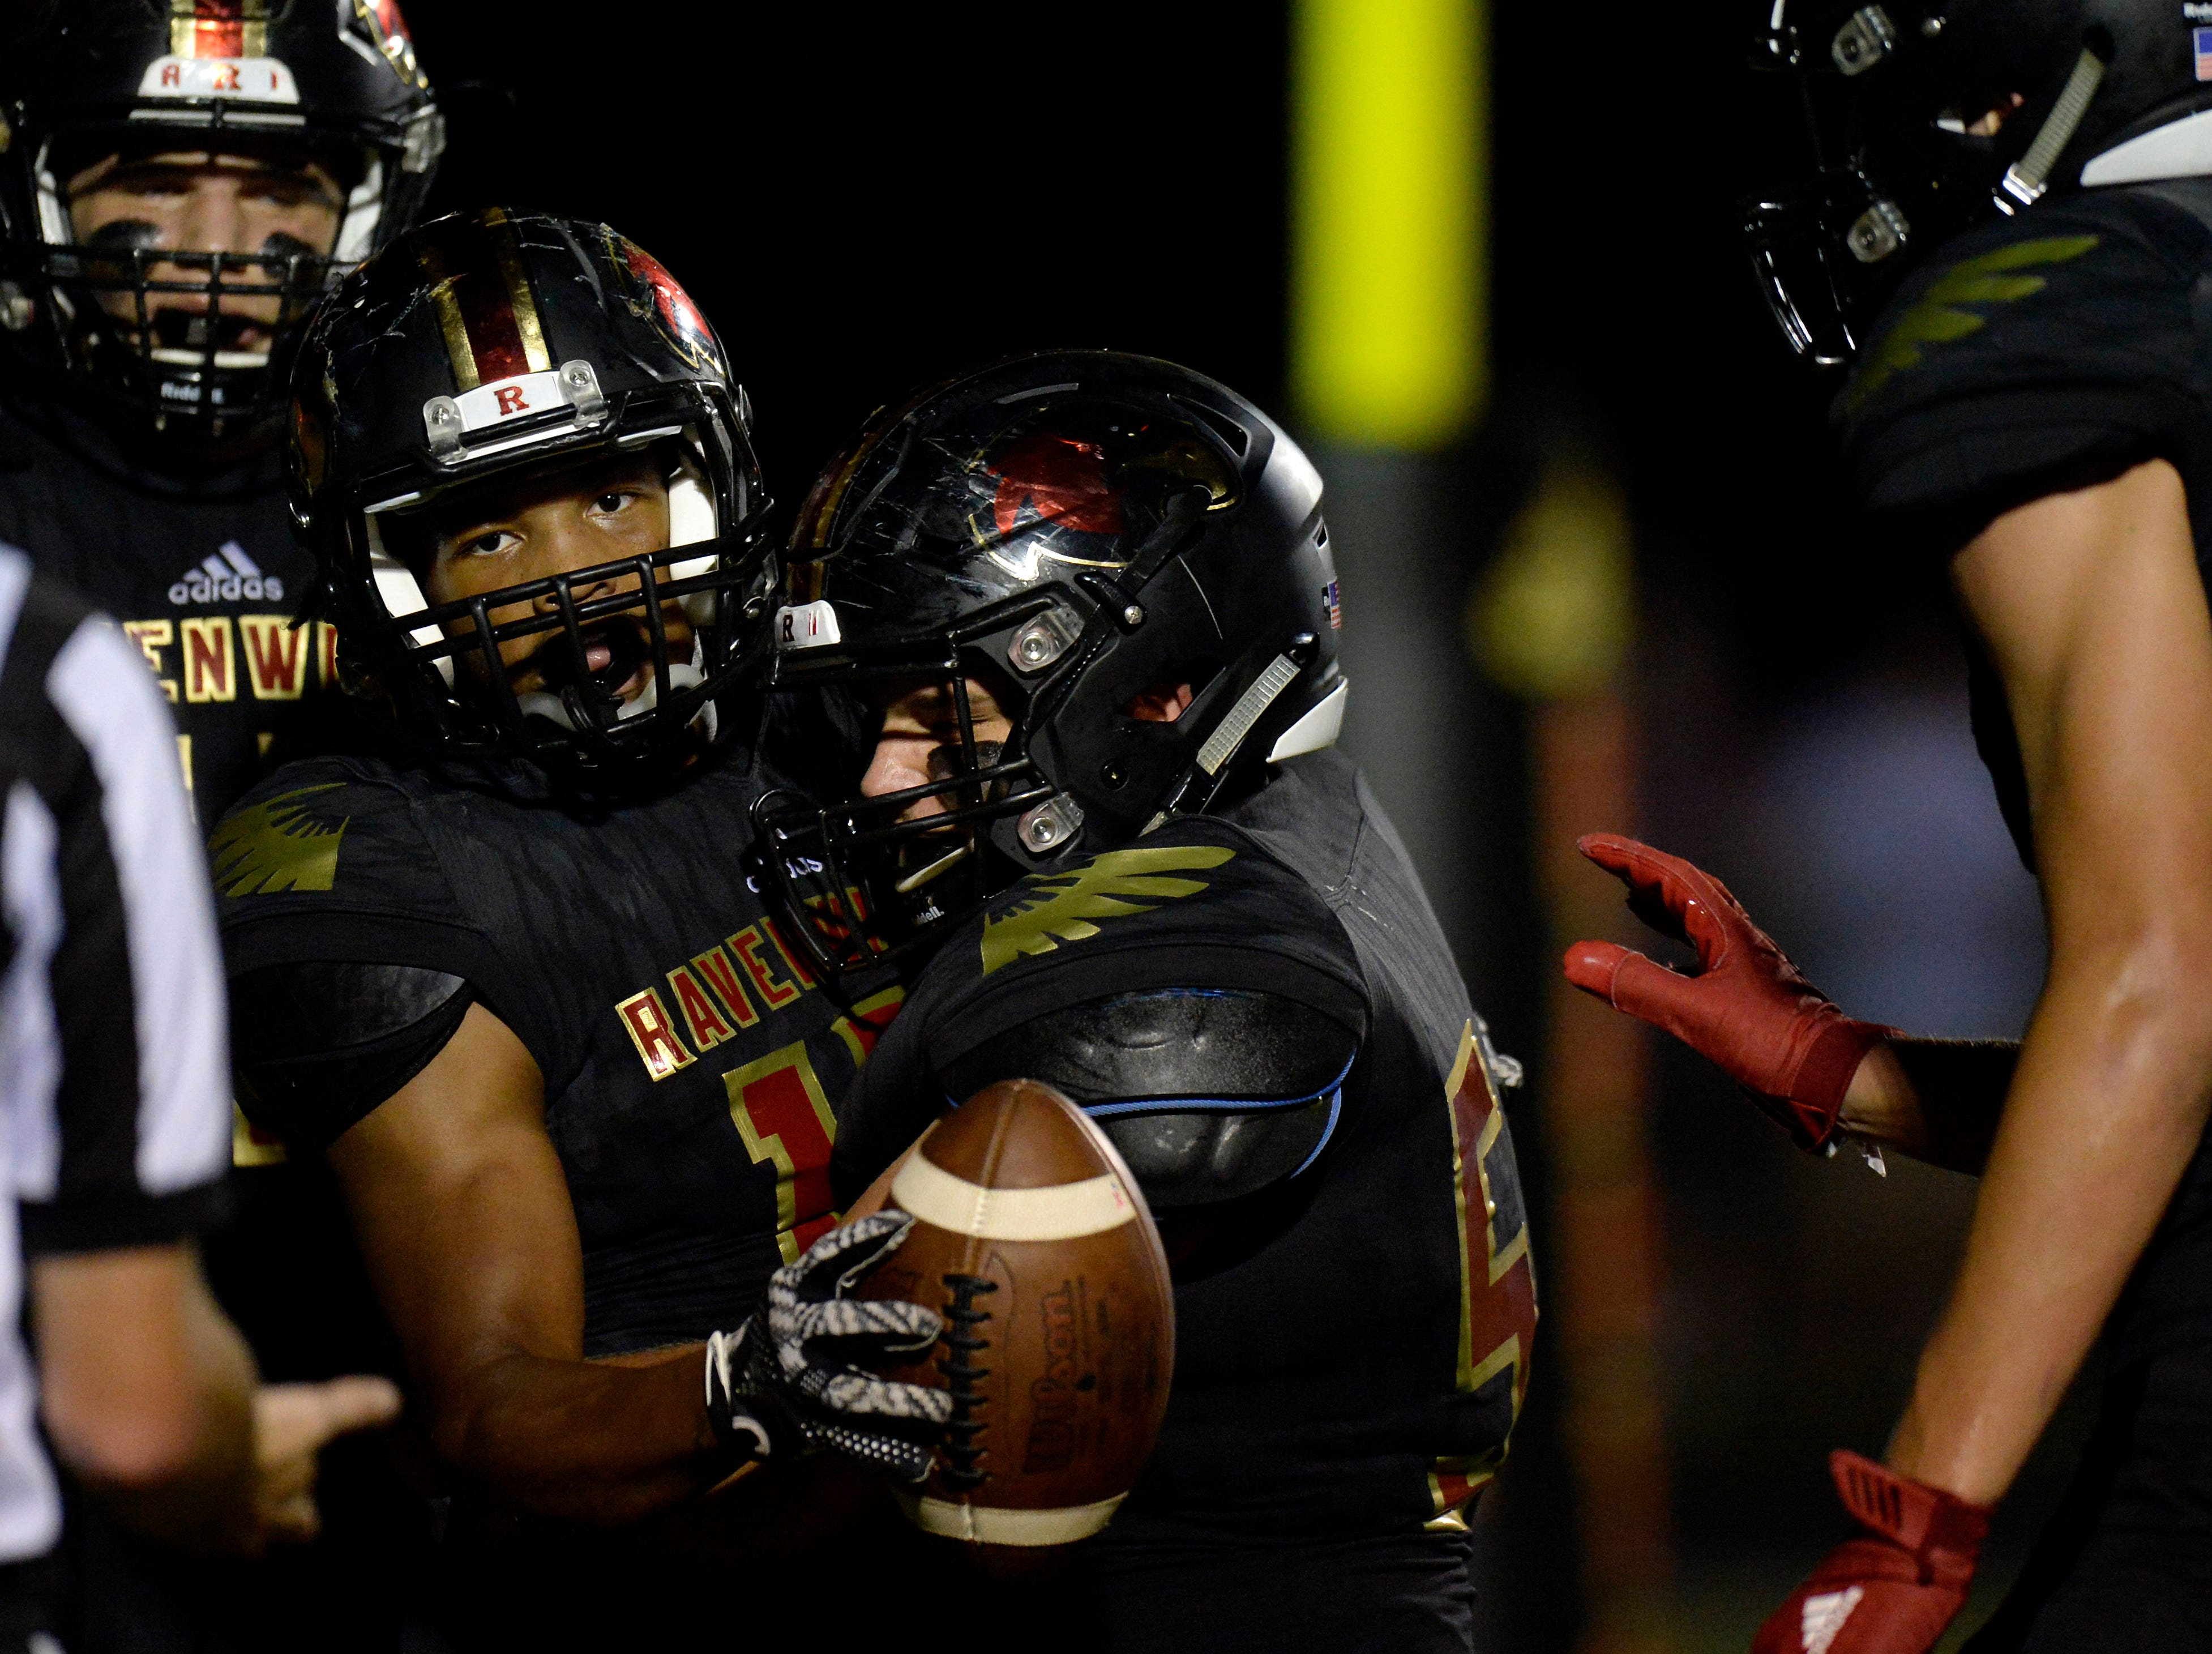 Ravenwood running back Tony Rice, left, celebrates with teammates after scoring a touchdown against Brentwood during the first half of an high school football game Friday, September 14, 2018, in Brentwood, Tenn.